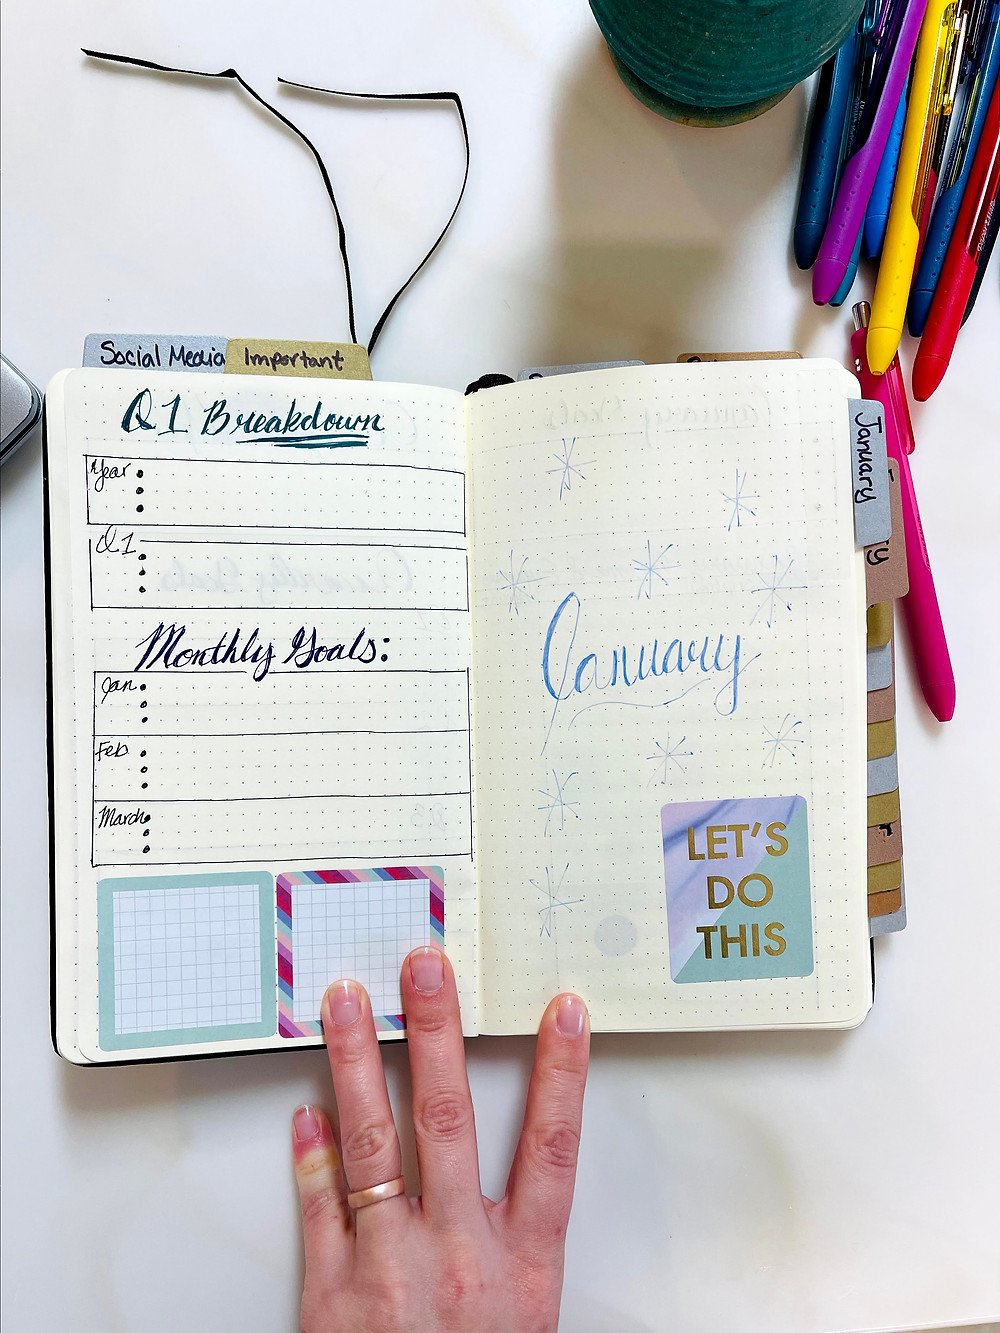 This image of the bullet journal the left page is the Quarter 1 breakdown, my 3 goals for the year, my three Quarter 1 goals and my goals for each month of Quarter 1 (Jan, Feb, and March). Each month also has 3 goals. The Right page is the Title Cover page for the Month of Januray.